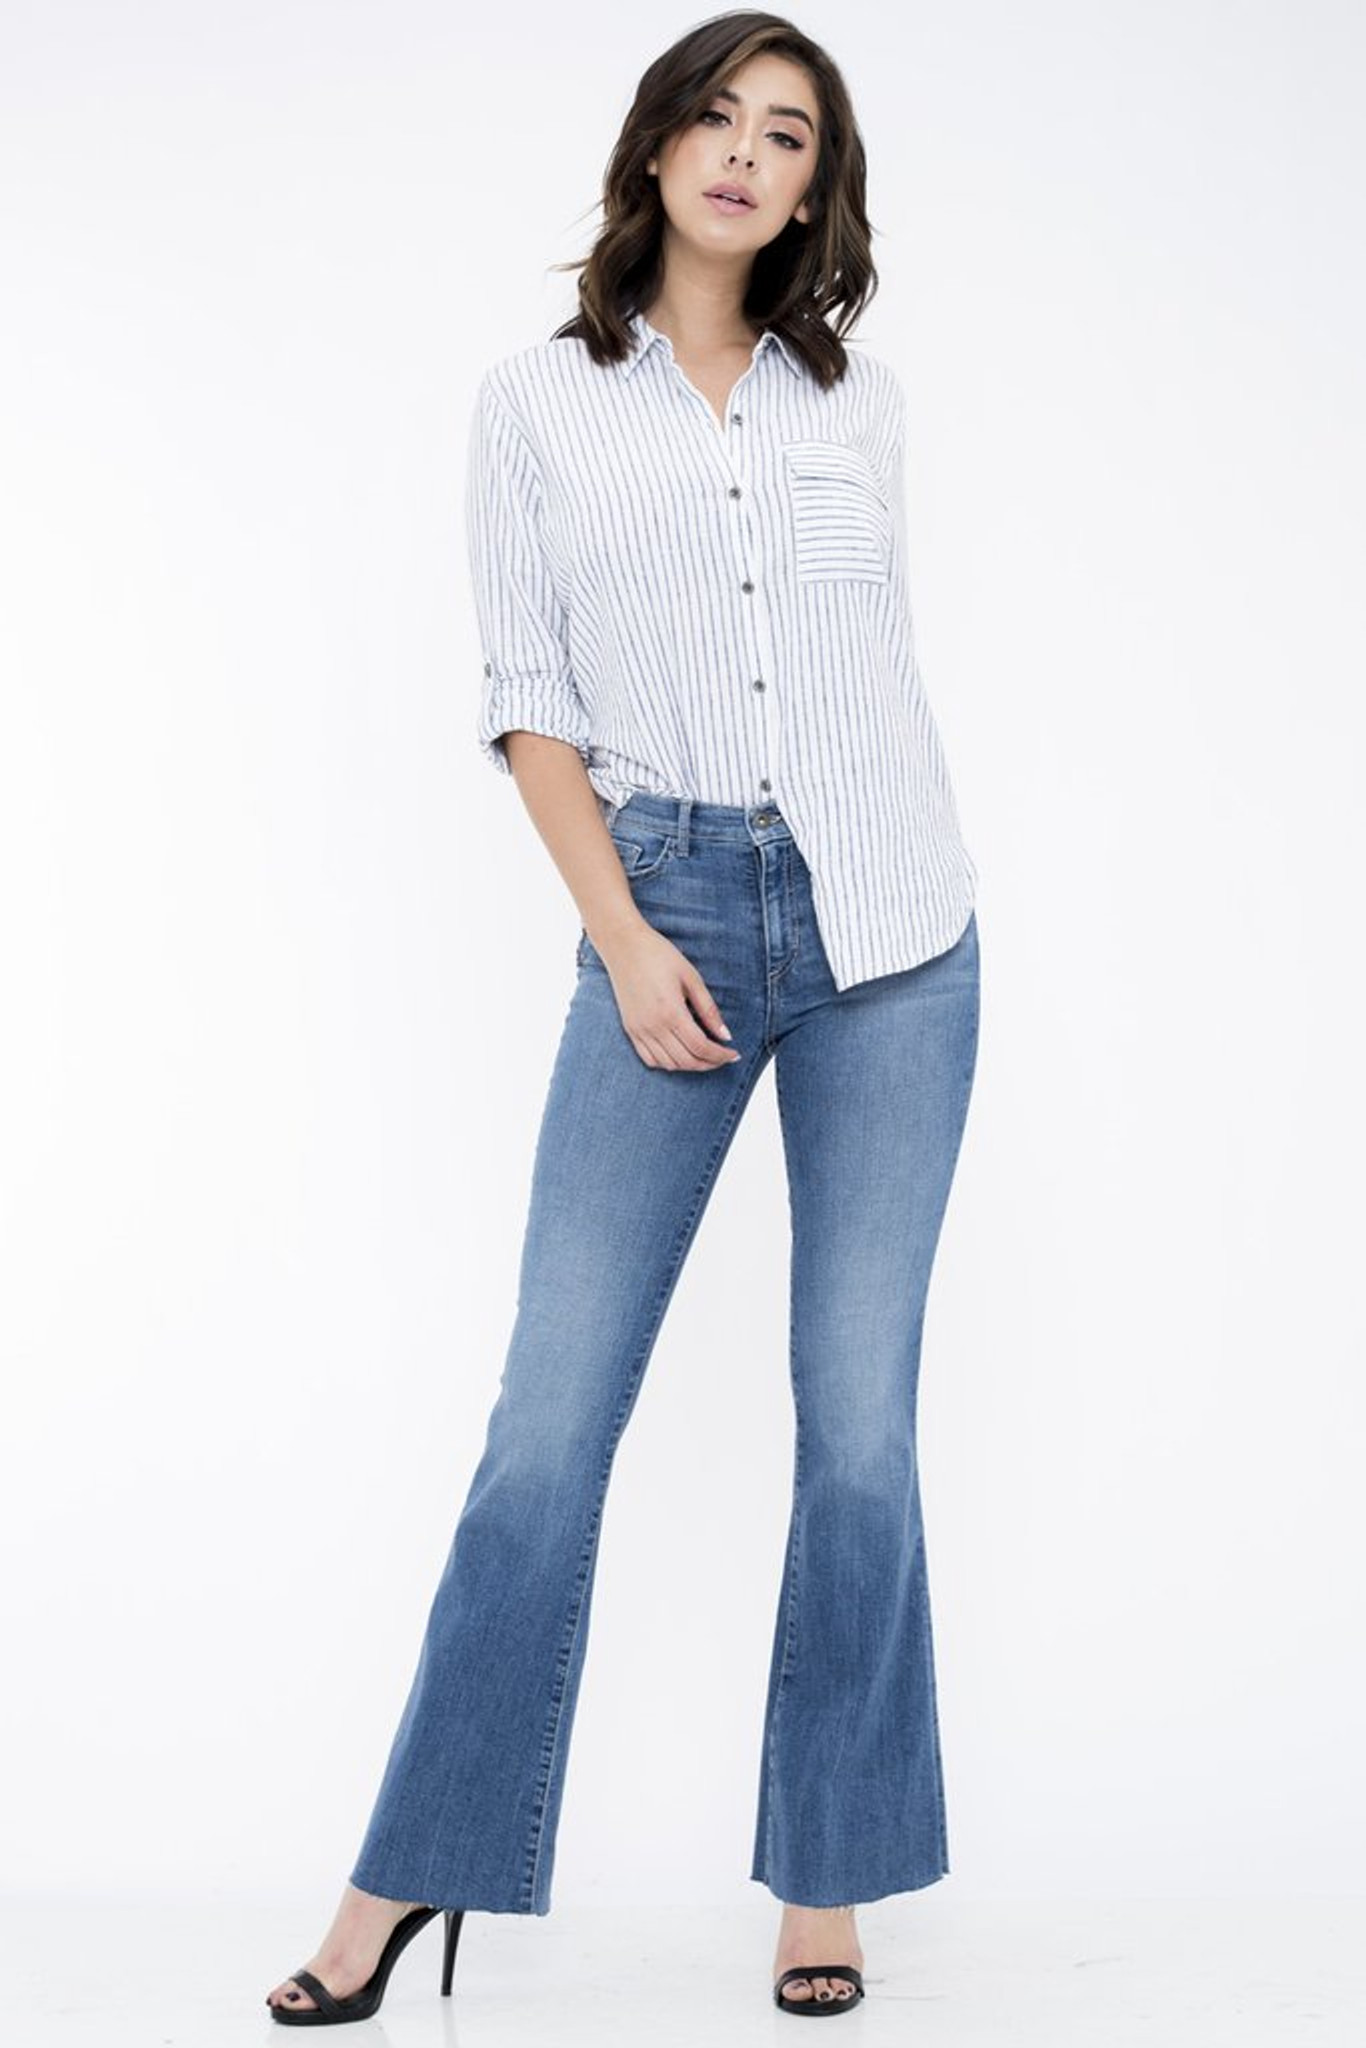 b8c7e4a75f6 Women's Sneak Peek Jeans, Medium Rise, Flare - Chick Elms Grand Entry  Western Store and Rodeo Shop